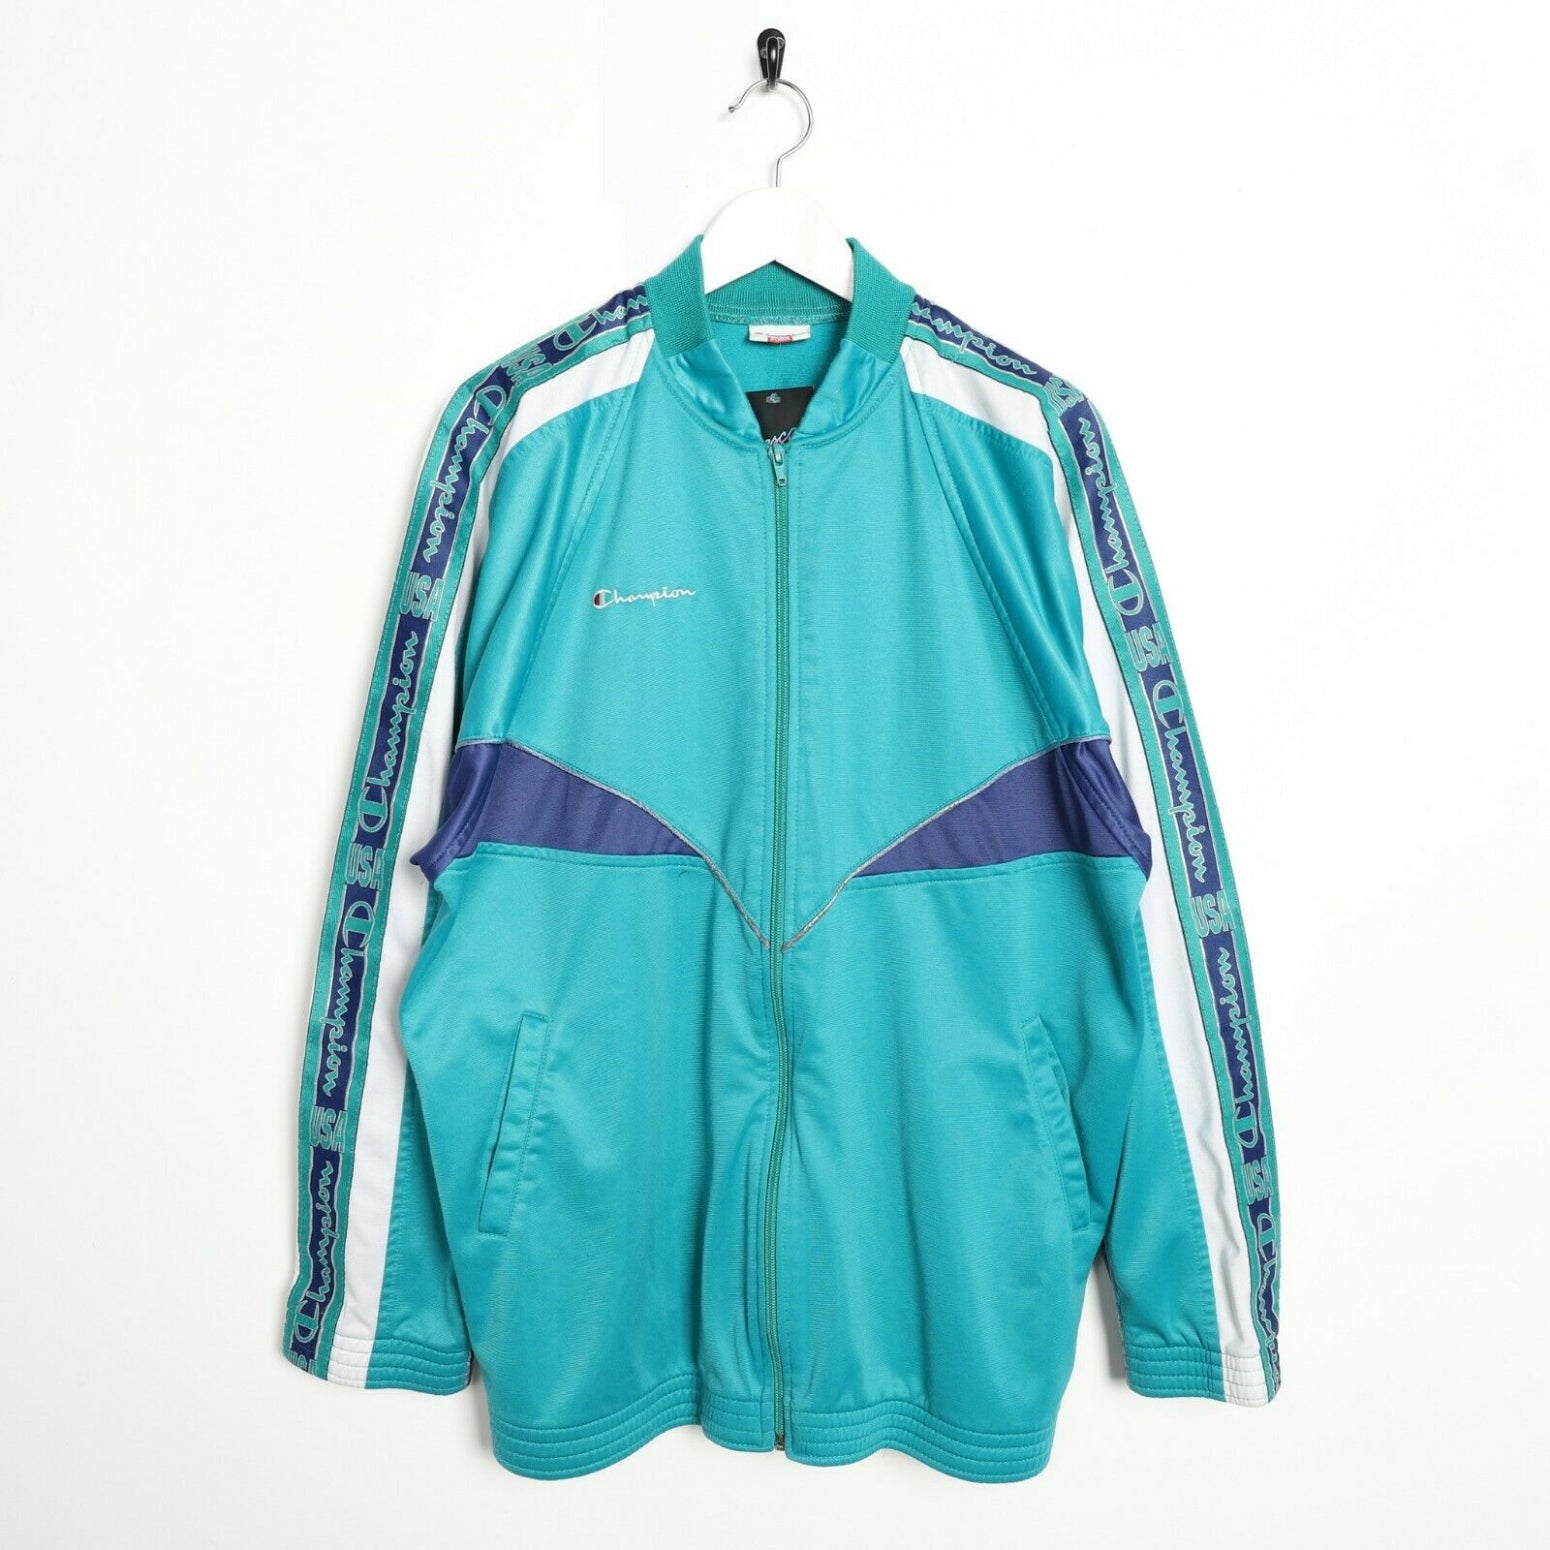 Vintage 90s CHAMPION Tape Arm Tracksuit Top Jacket Green | XL